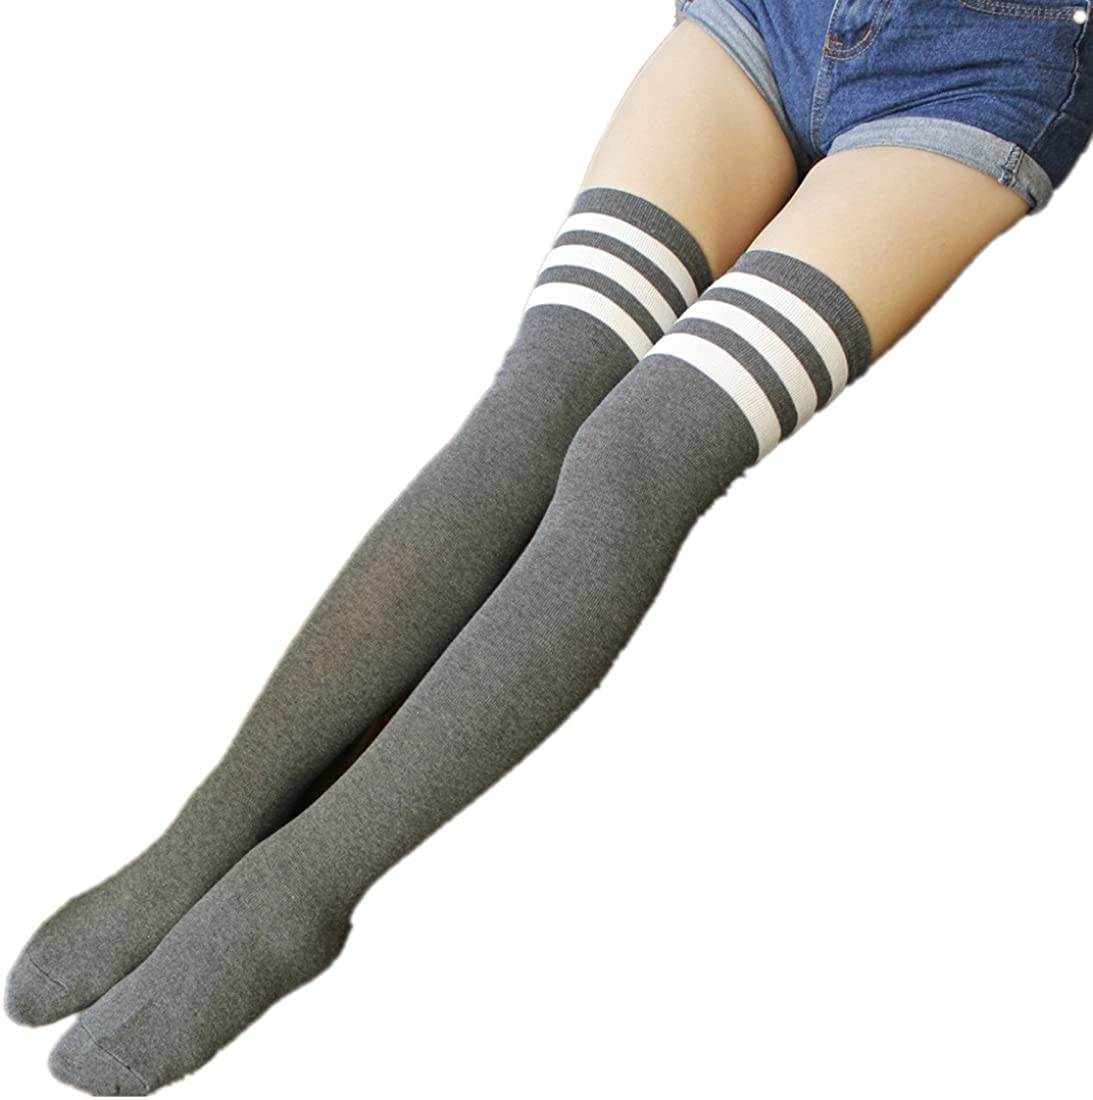 Womens Striped Over the Knee Tights High Stockings Socks 3 Pack